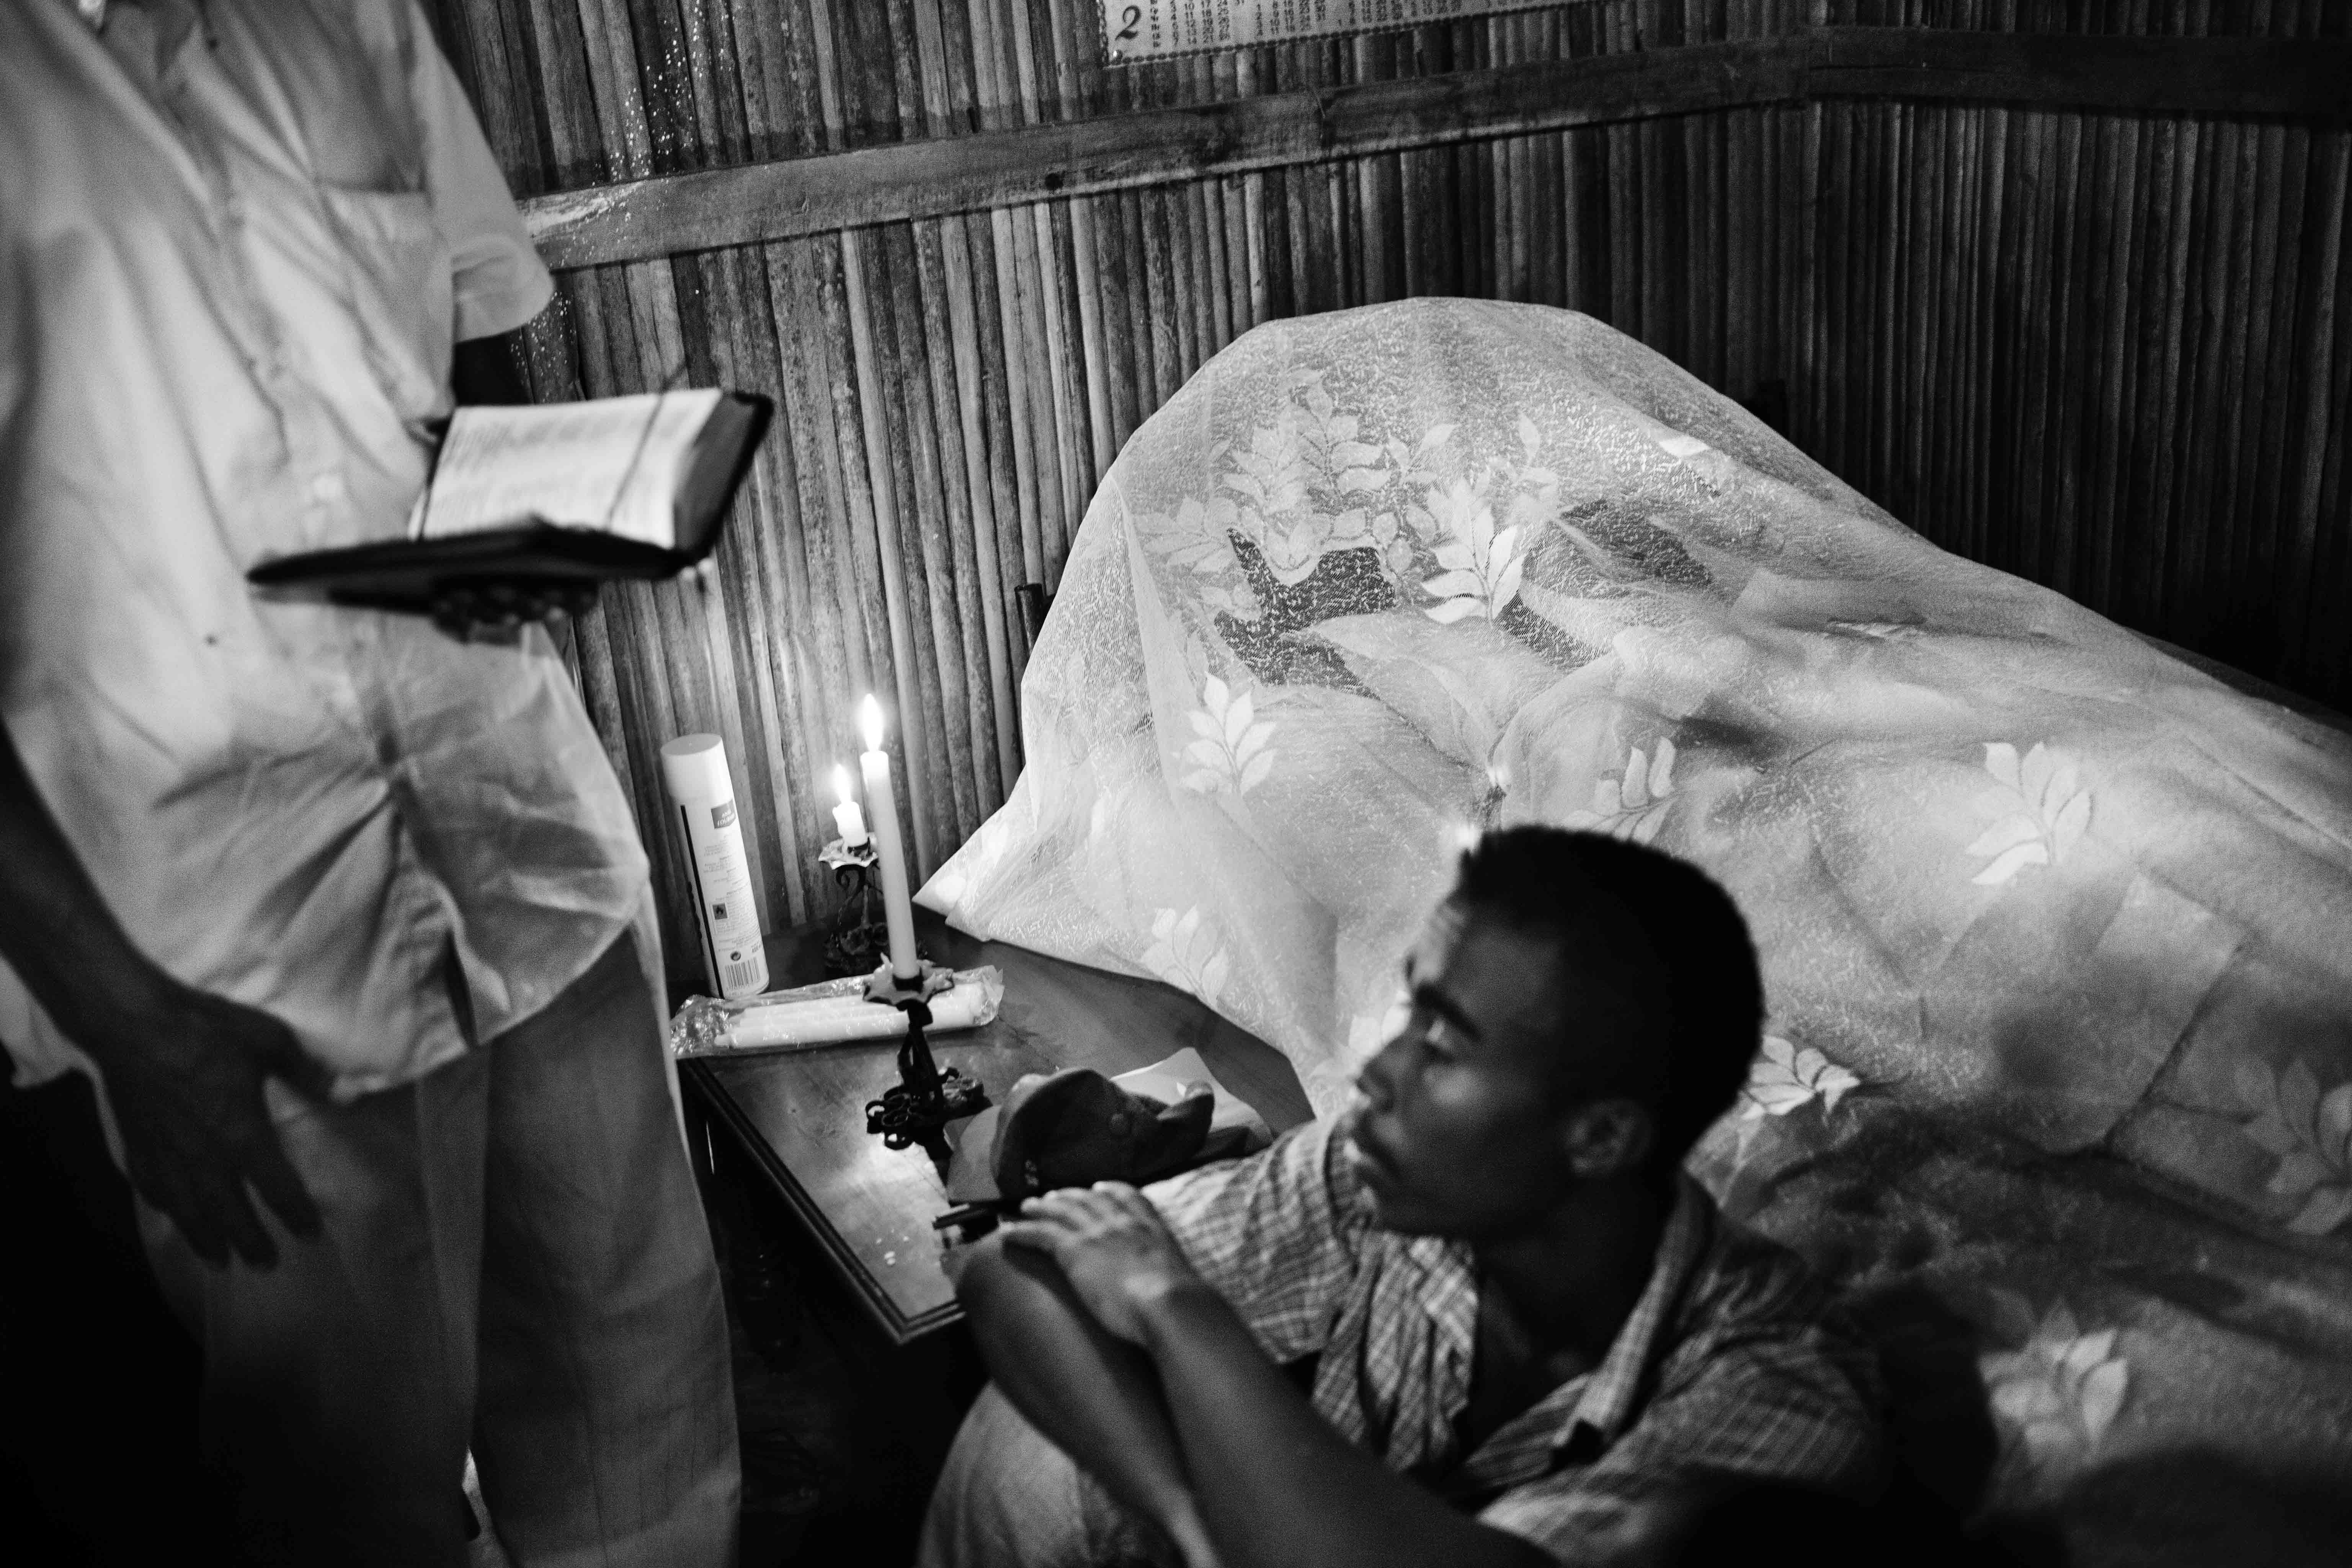 The body of a large plantation's security guard is seen in his bed at home. He was killed by a local gang as revenge for preventing them from stealing cocoa seeds from the plantation the previous day, March 12, 2013. After his death, police launched an operation to try to clamp down on cocoa gangs.